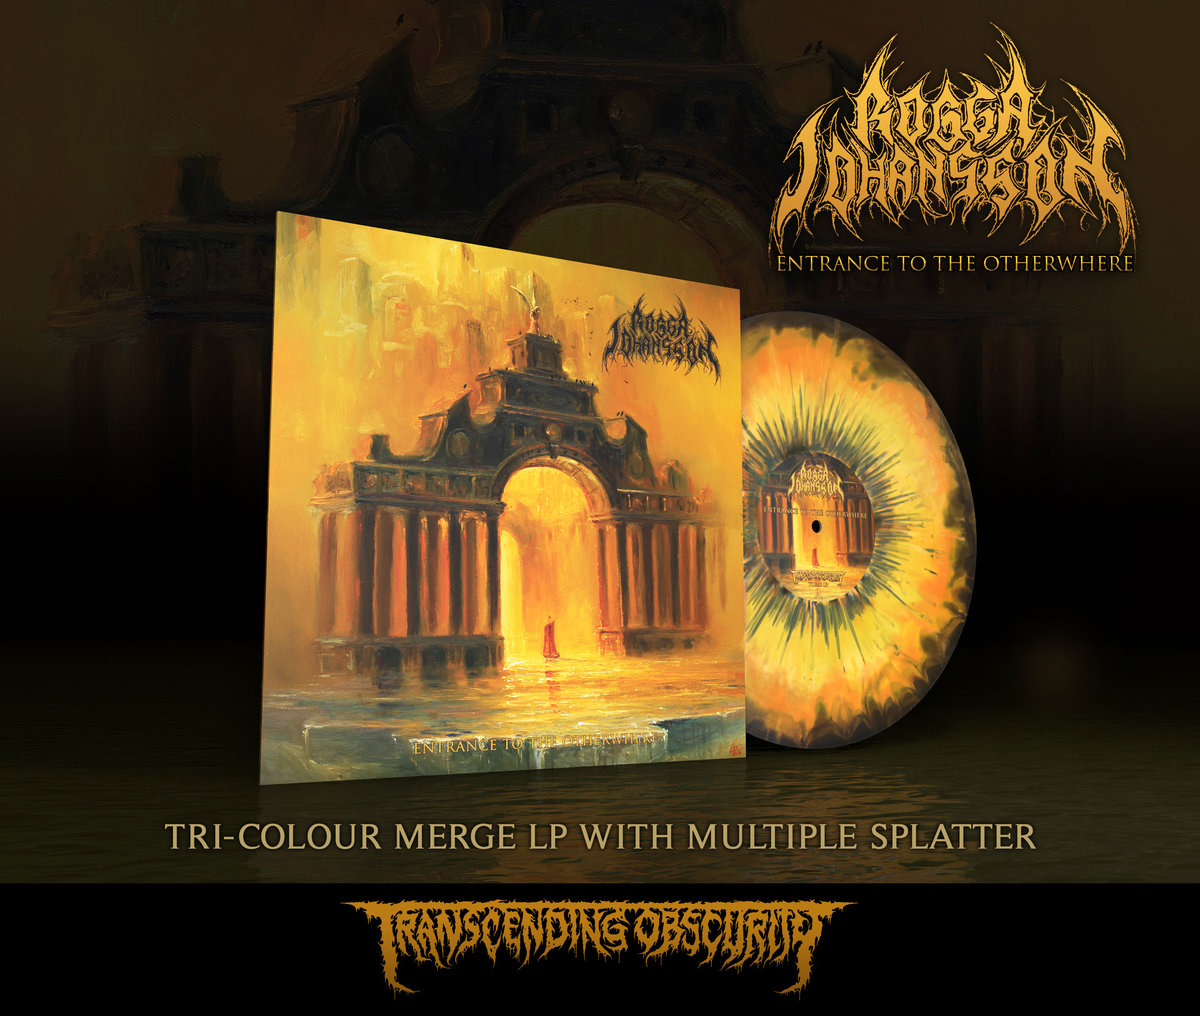 ROGGA JOHANSSON - Entrance to the Otherwhere Tri-colour Merge with Splatter LP (Limited to 100 only!)